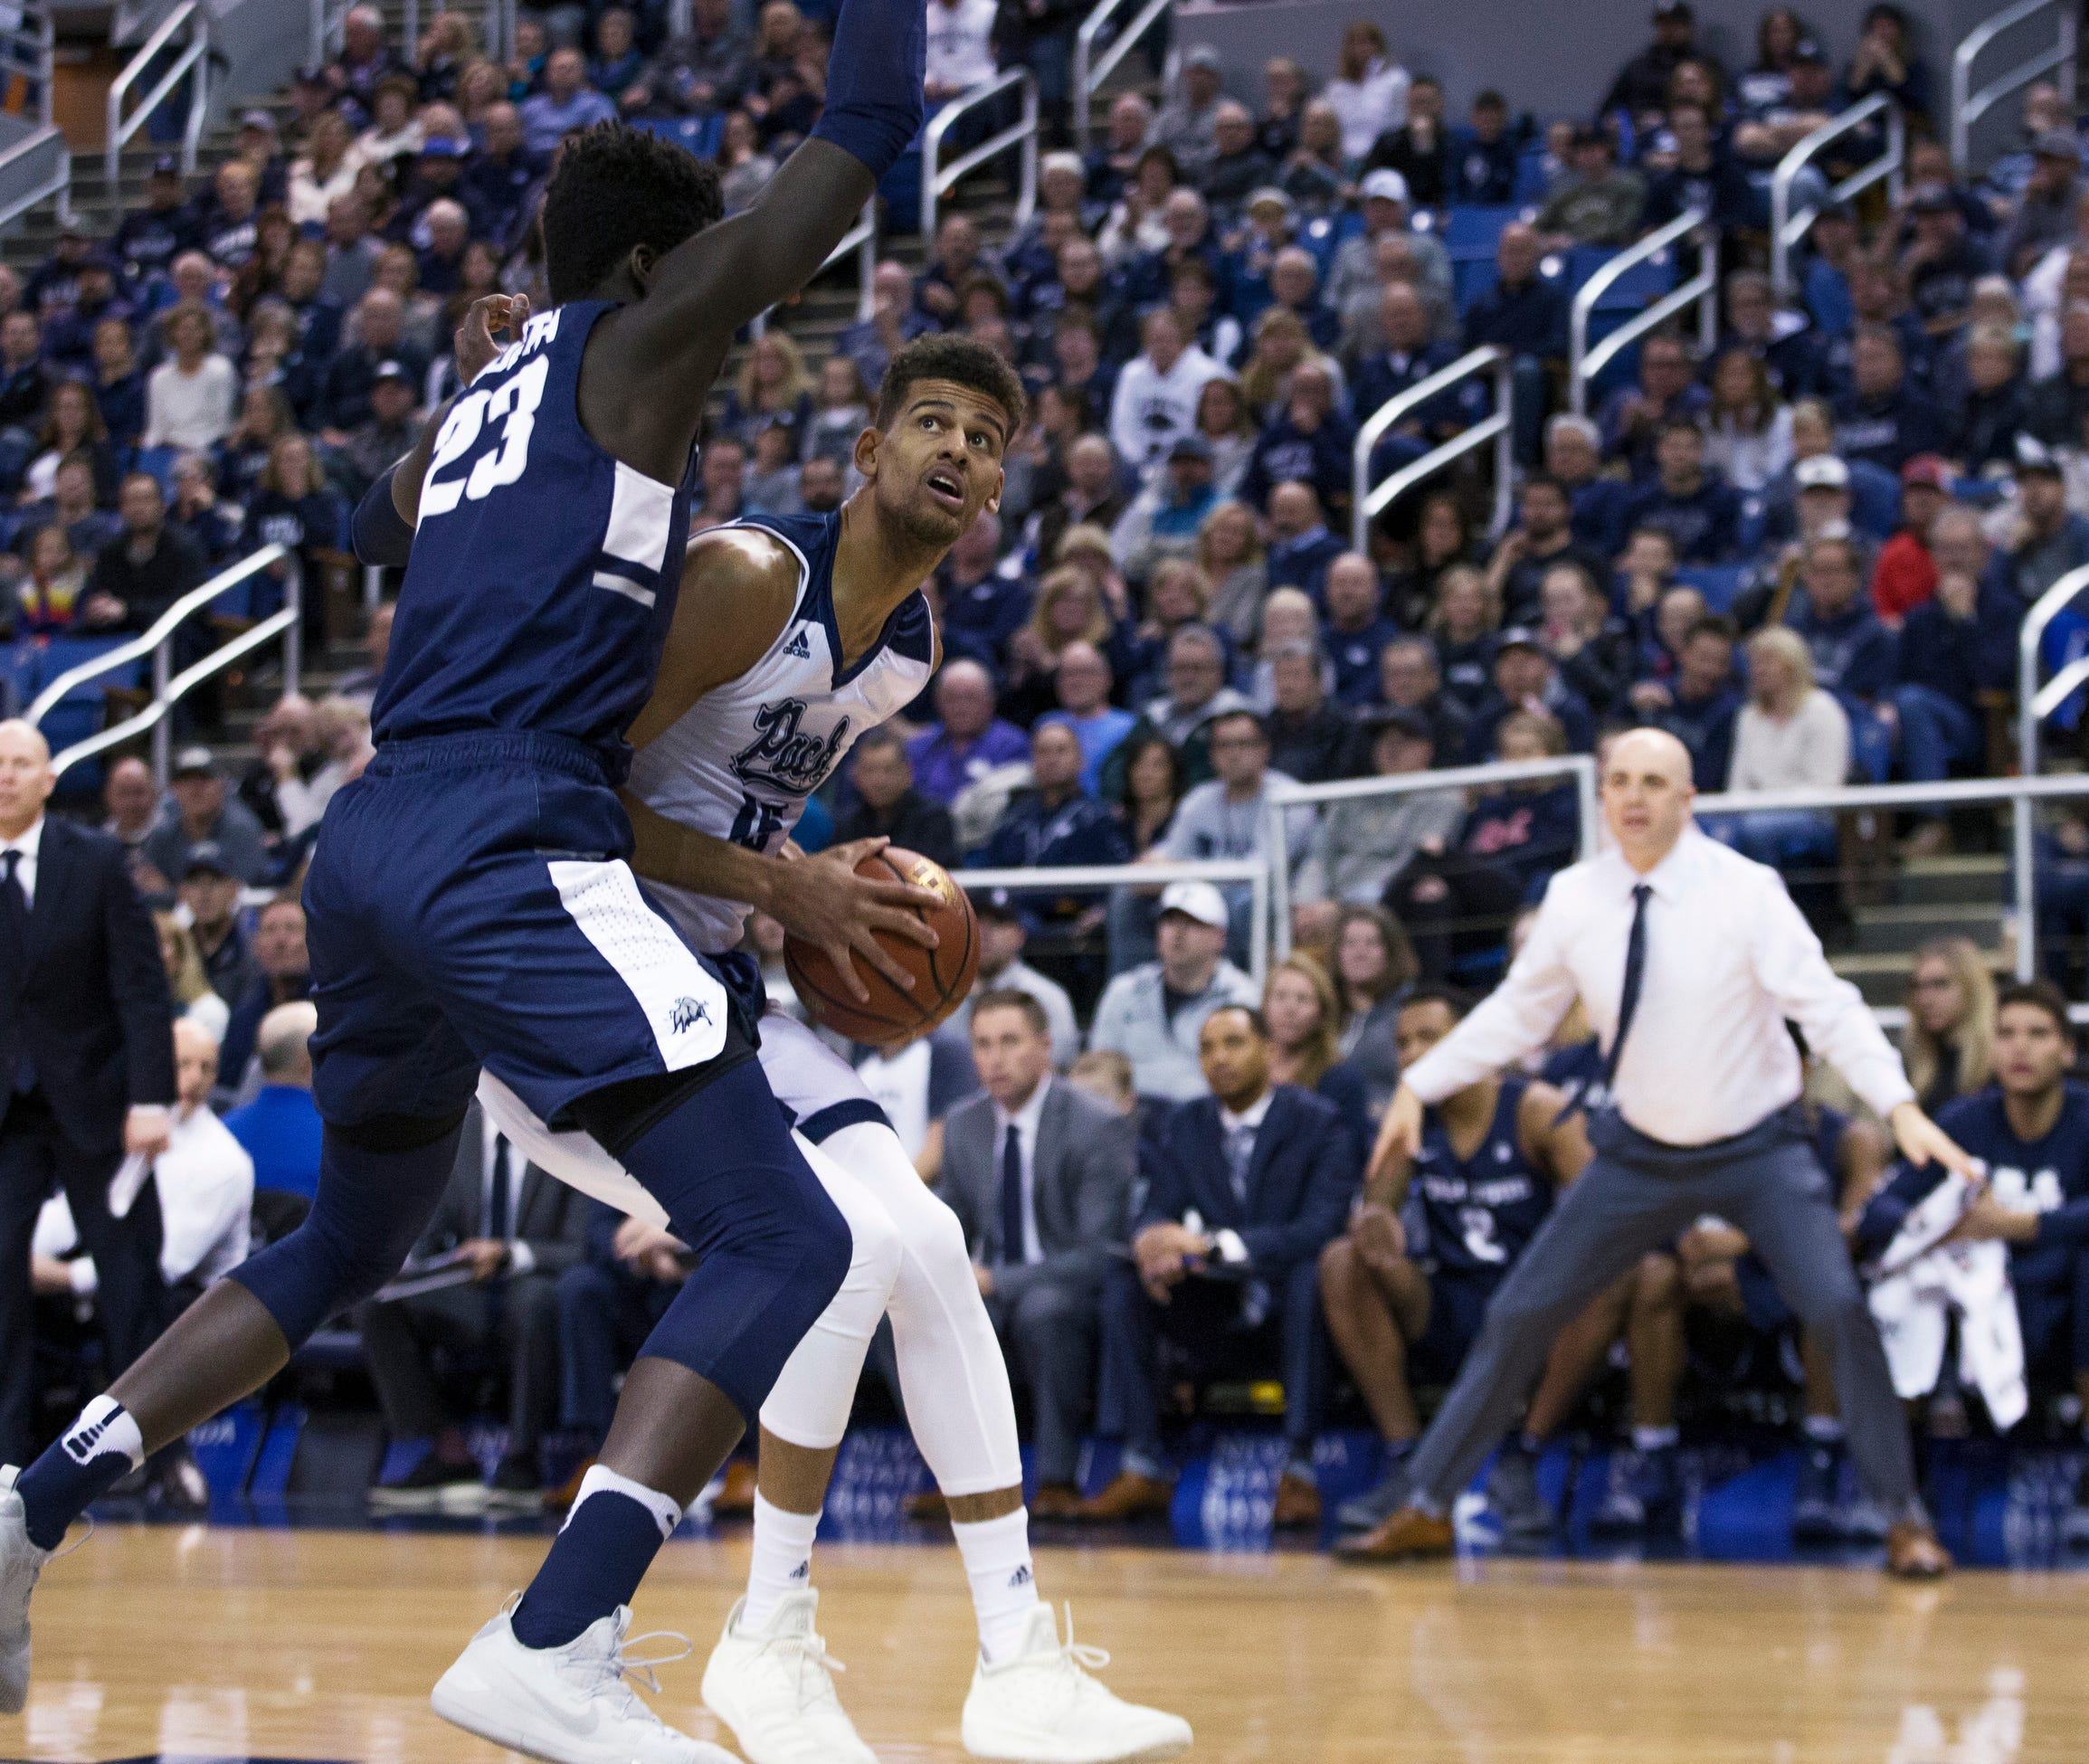 No. 6 Nevada romps past Utah State 72-49 to remain unbeaten